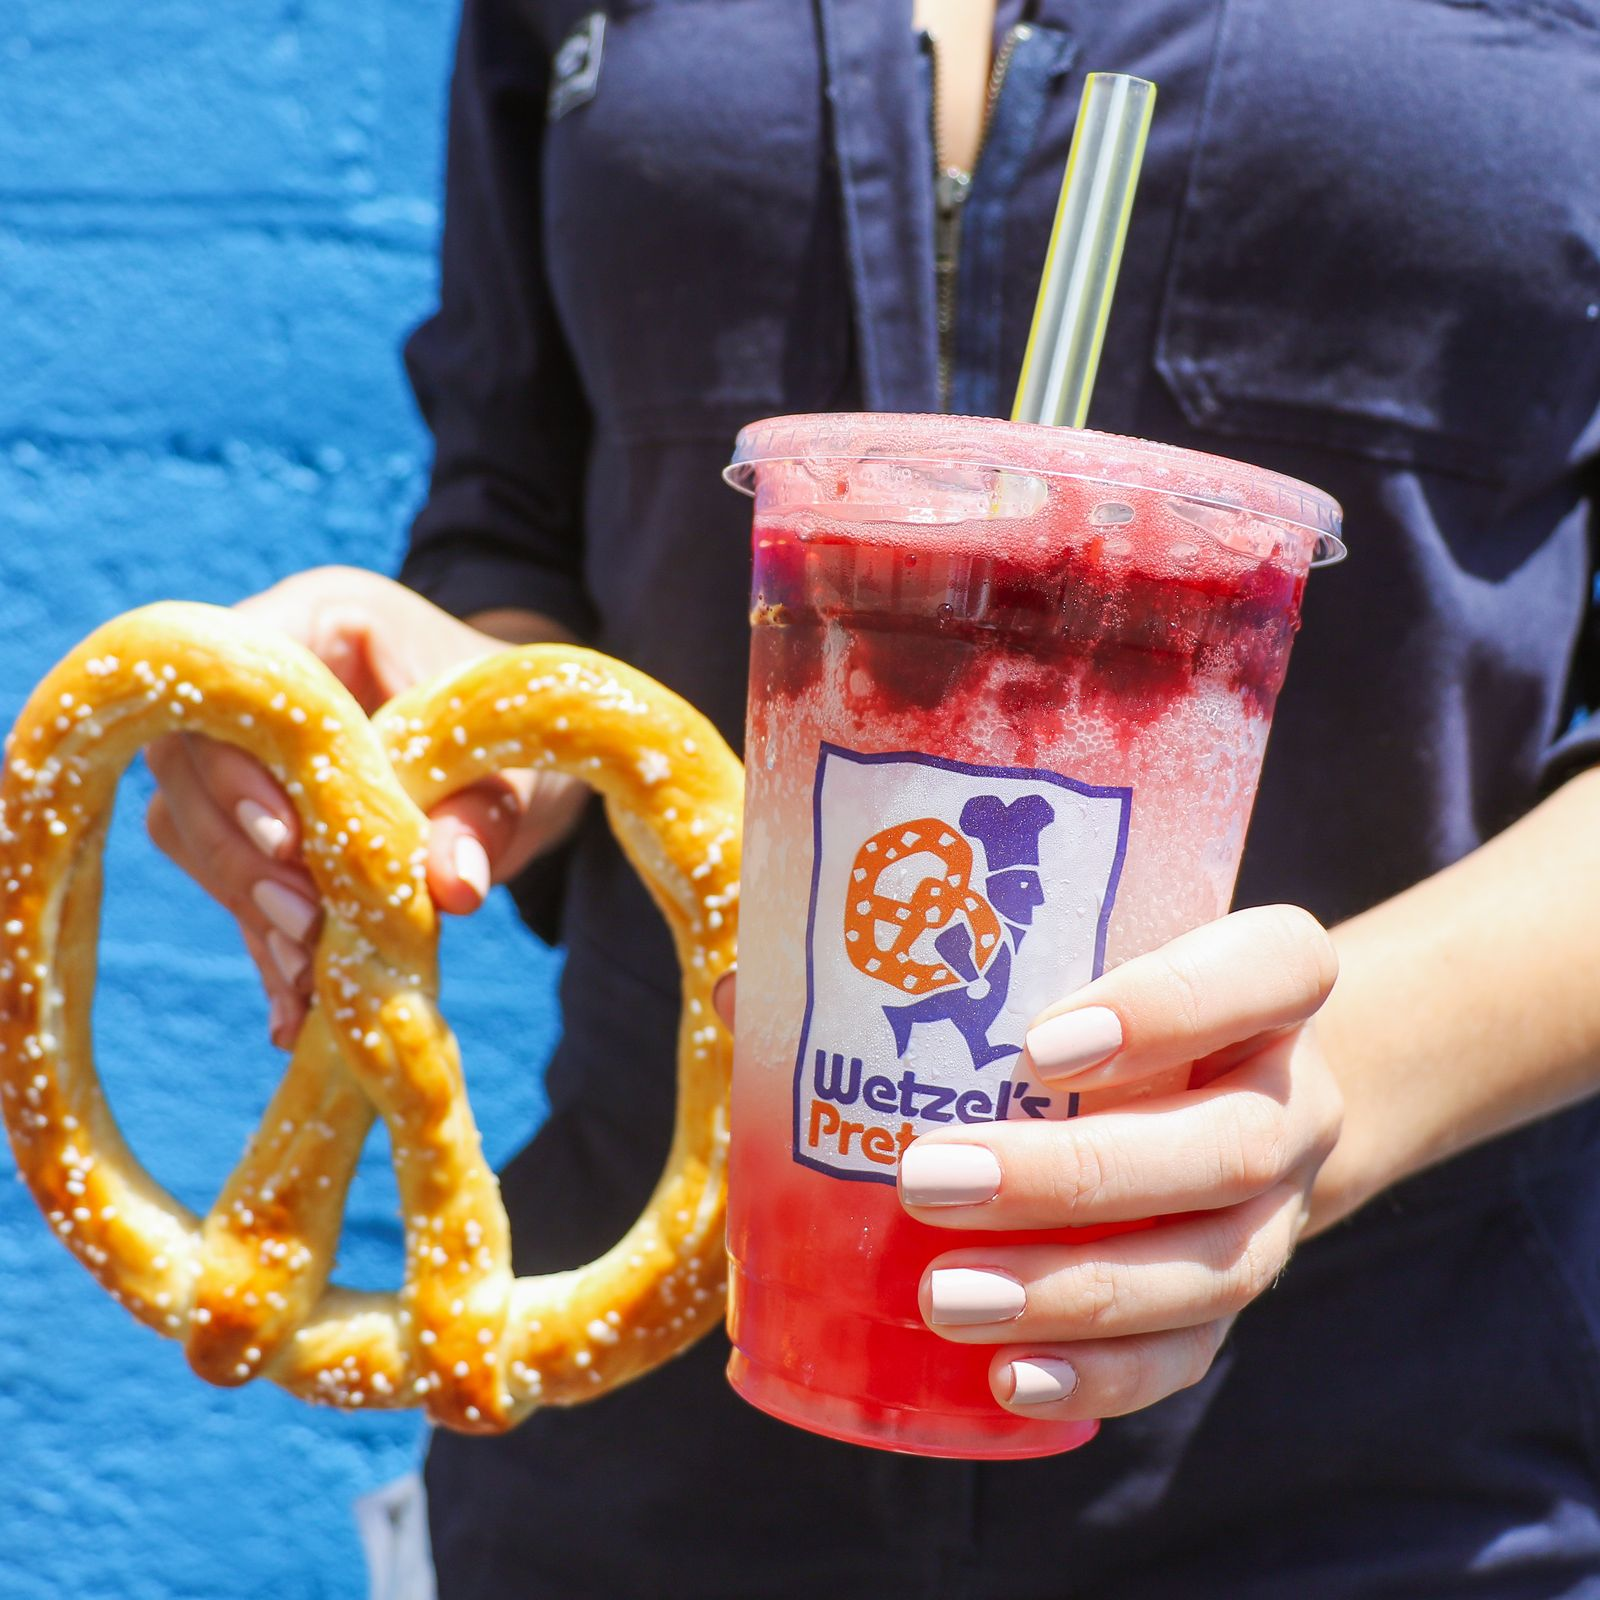 Wetzel's Pretzels Bakes up East Coast Expansion Plans